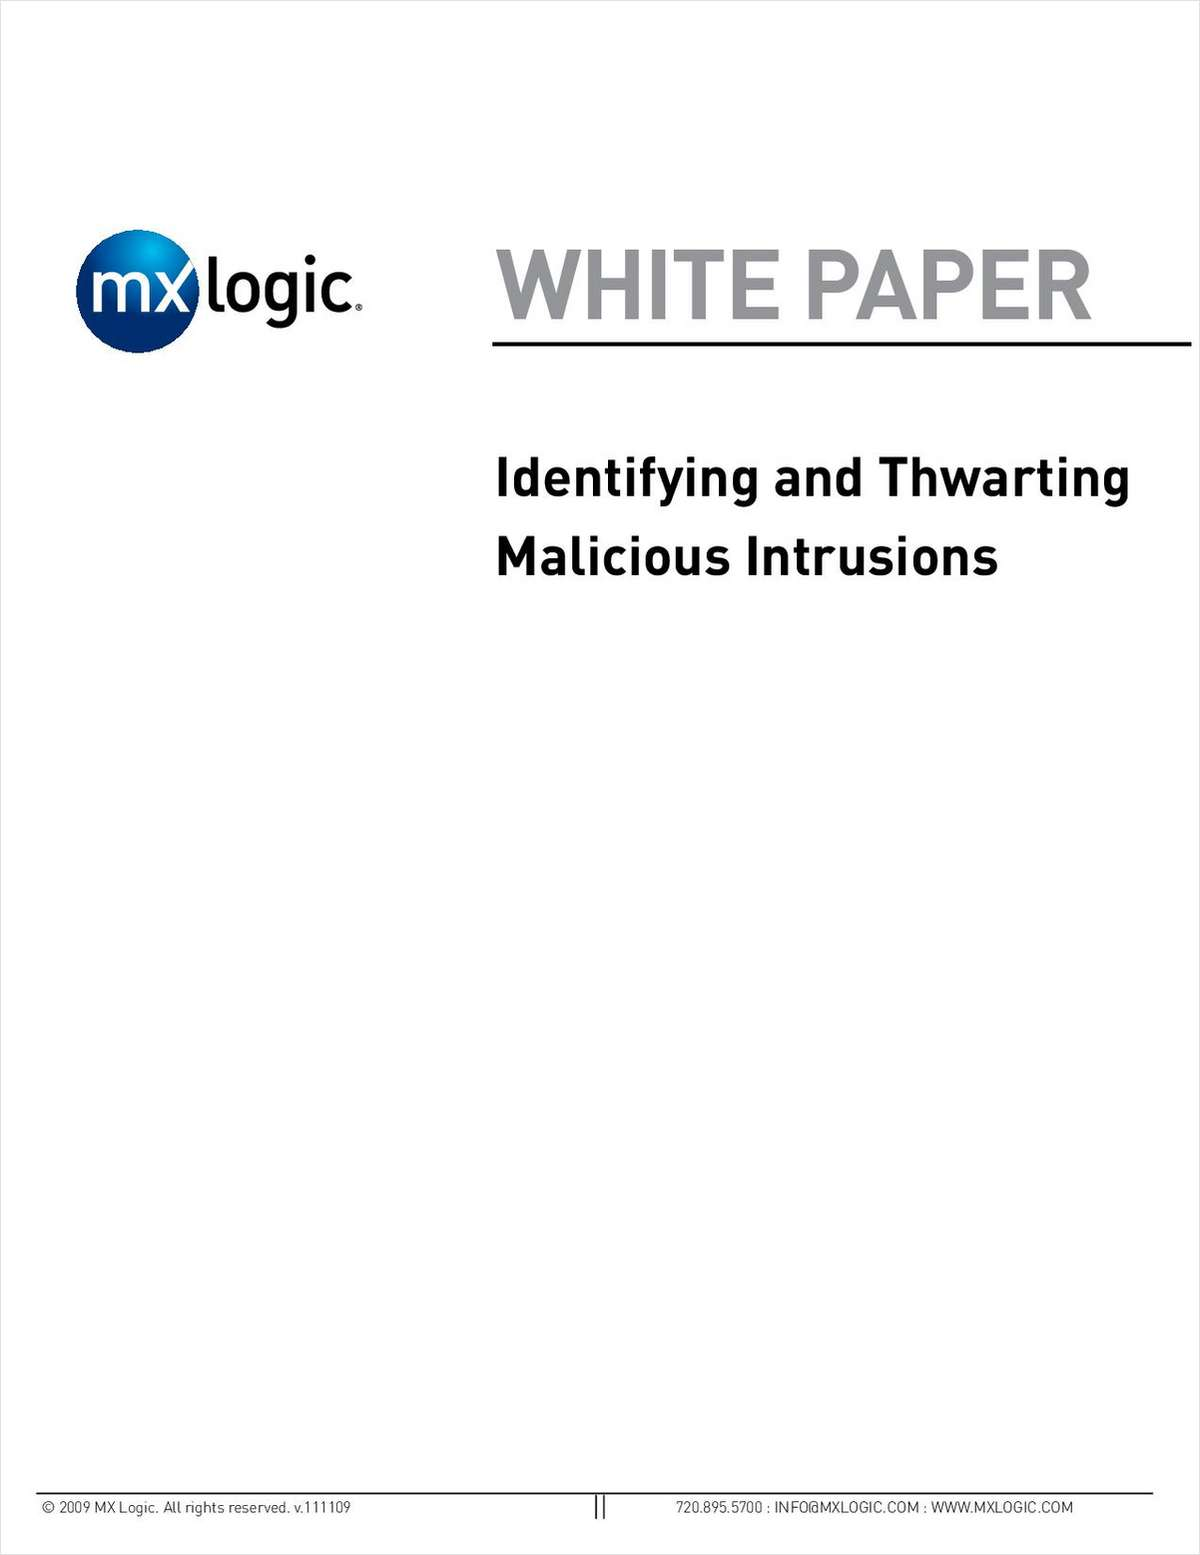 Identifying and Thwarting Malicious Intrusions